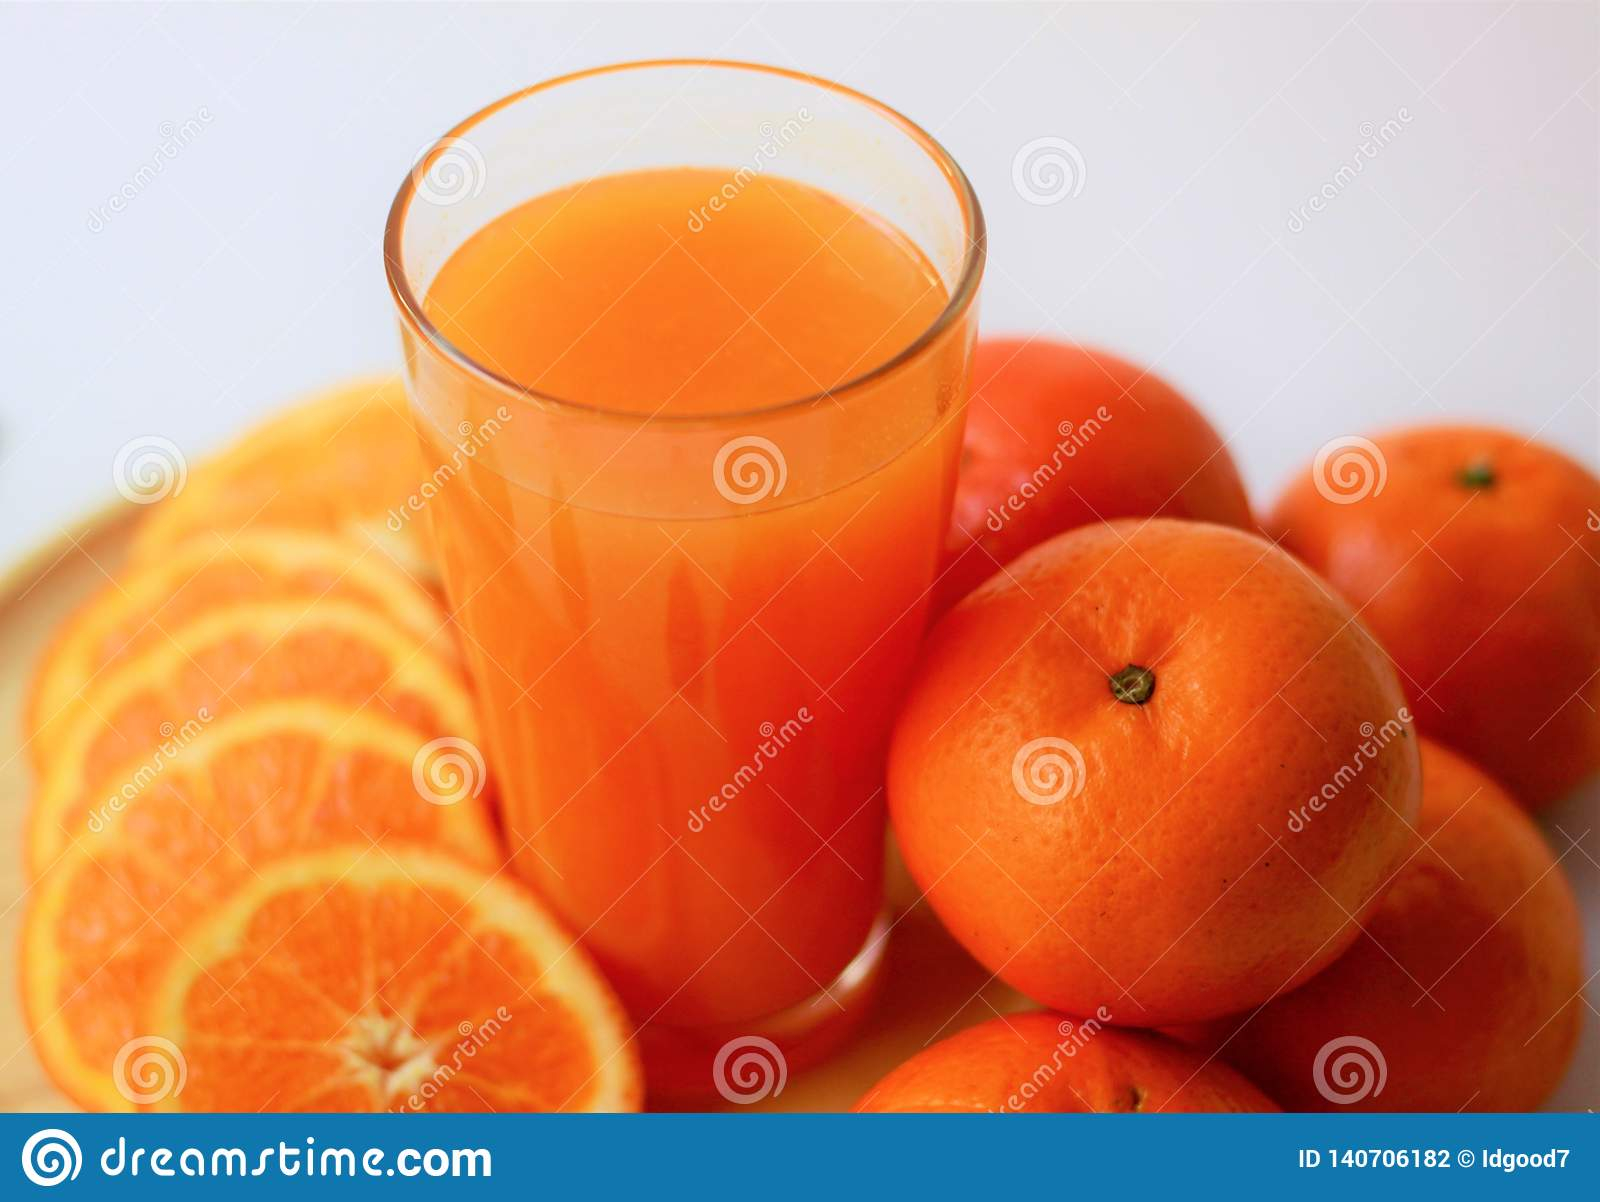 Close-up vers jus d orange in glas, sinaasappelen en plakken van sinaasappelen, gezonde dranken, verse vitaminen